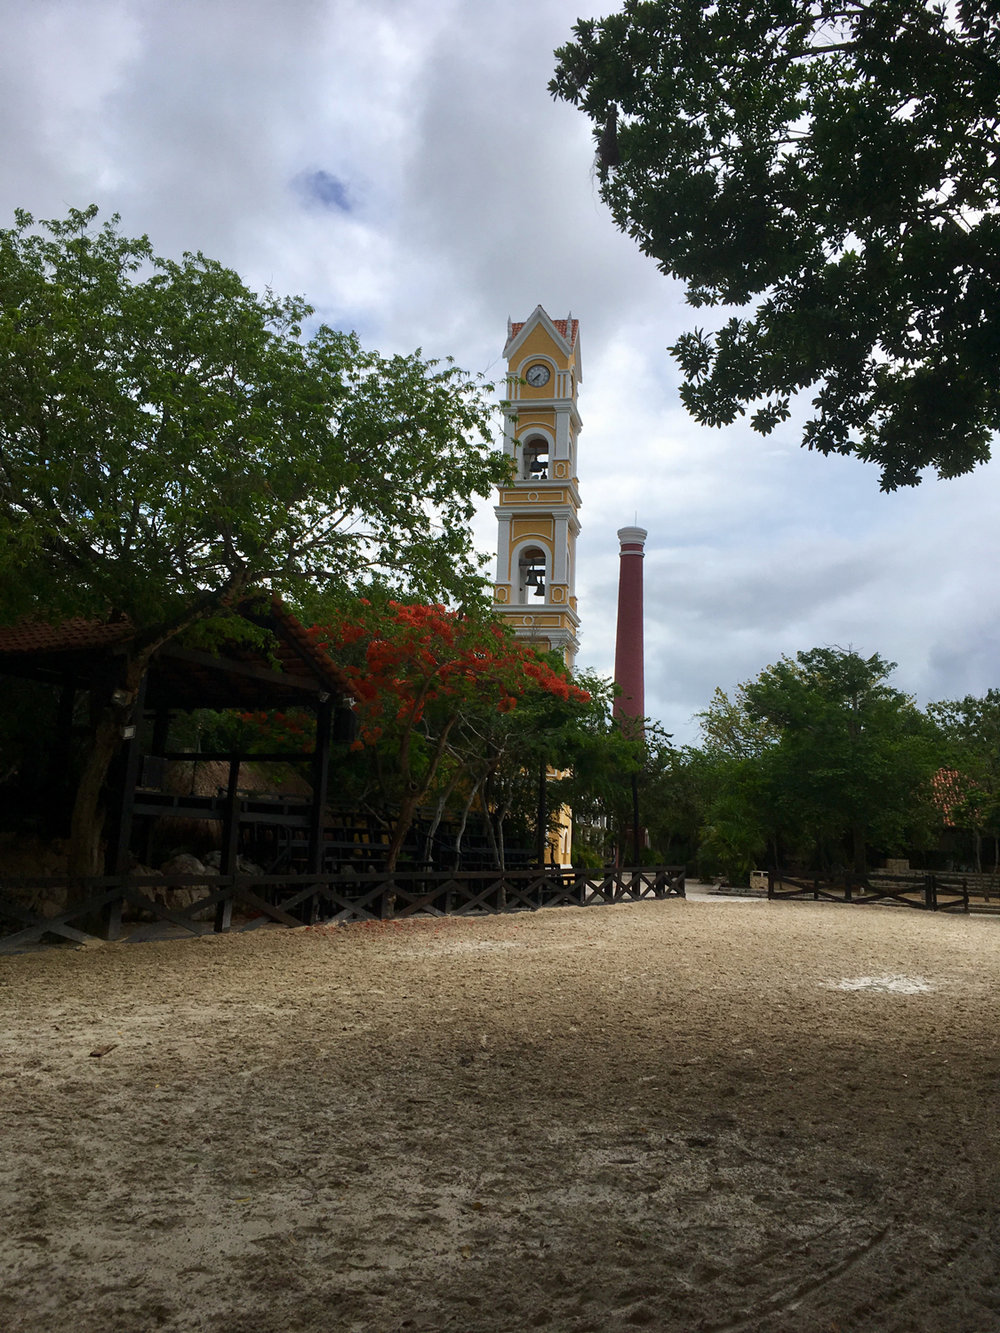 Xcaret hacienda with its chimney and the church.